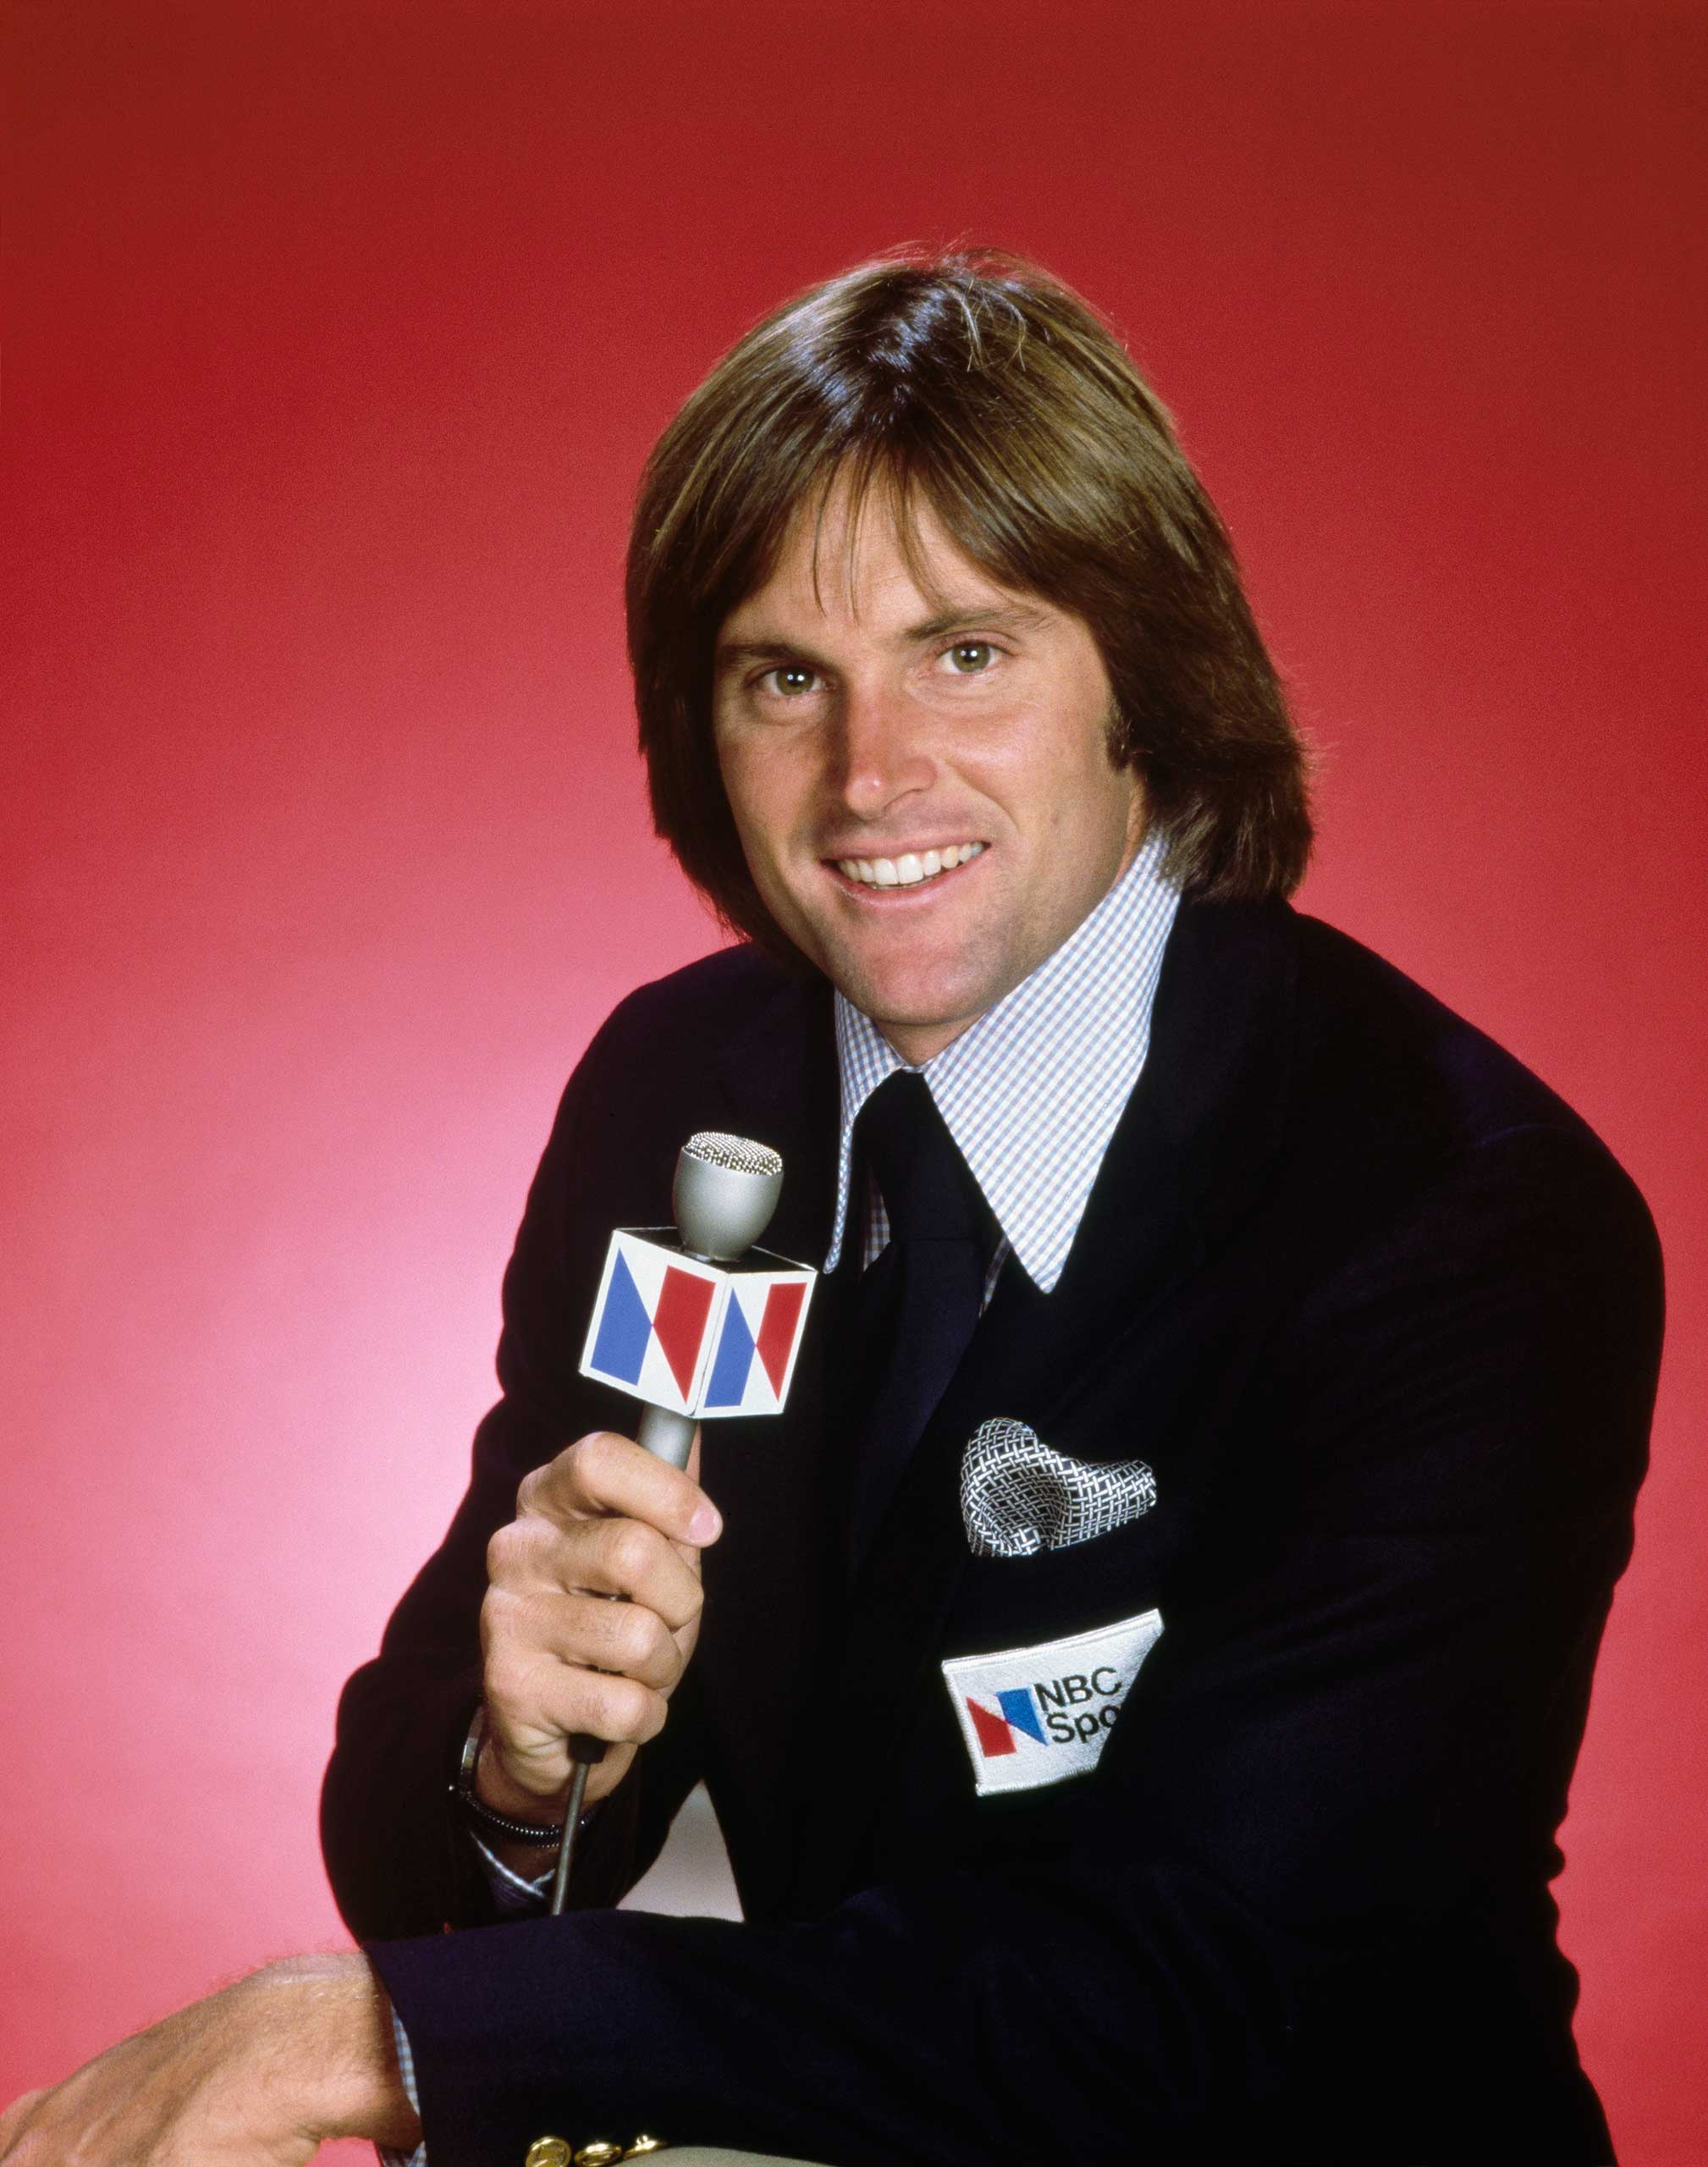 Jenner became an NBC Sportscaster in the late 1970s following his Olympic performance in Montreal.